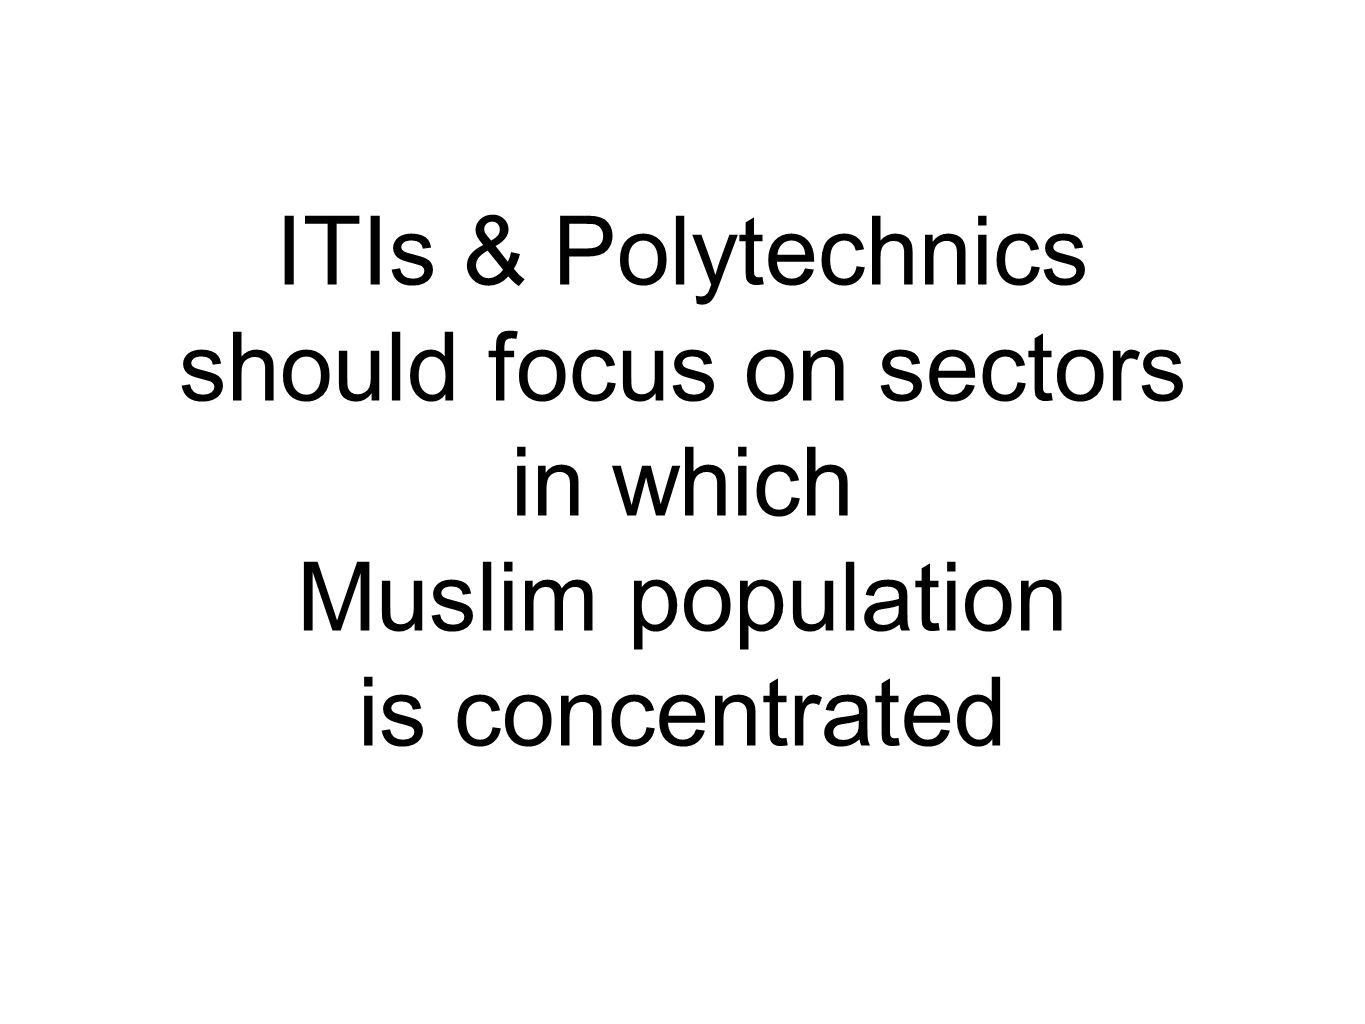 ITIs & Polytechnics should focus on sectors in which Muslim population is concentrated